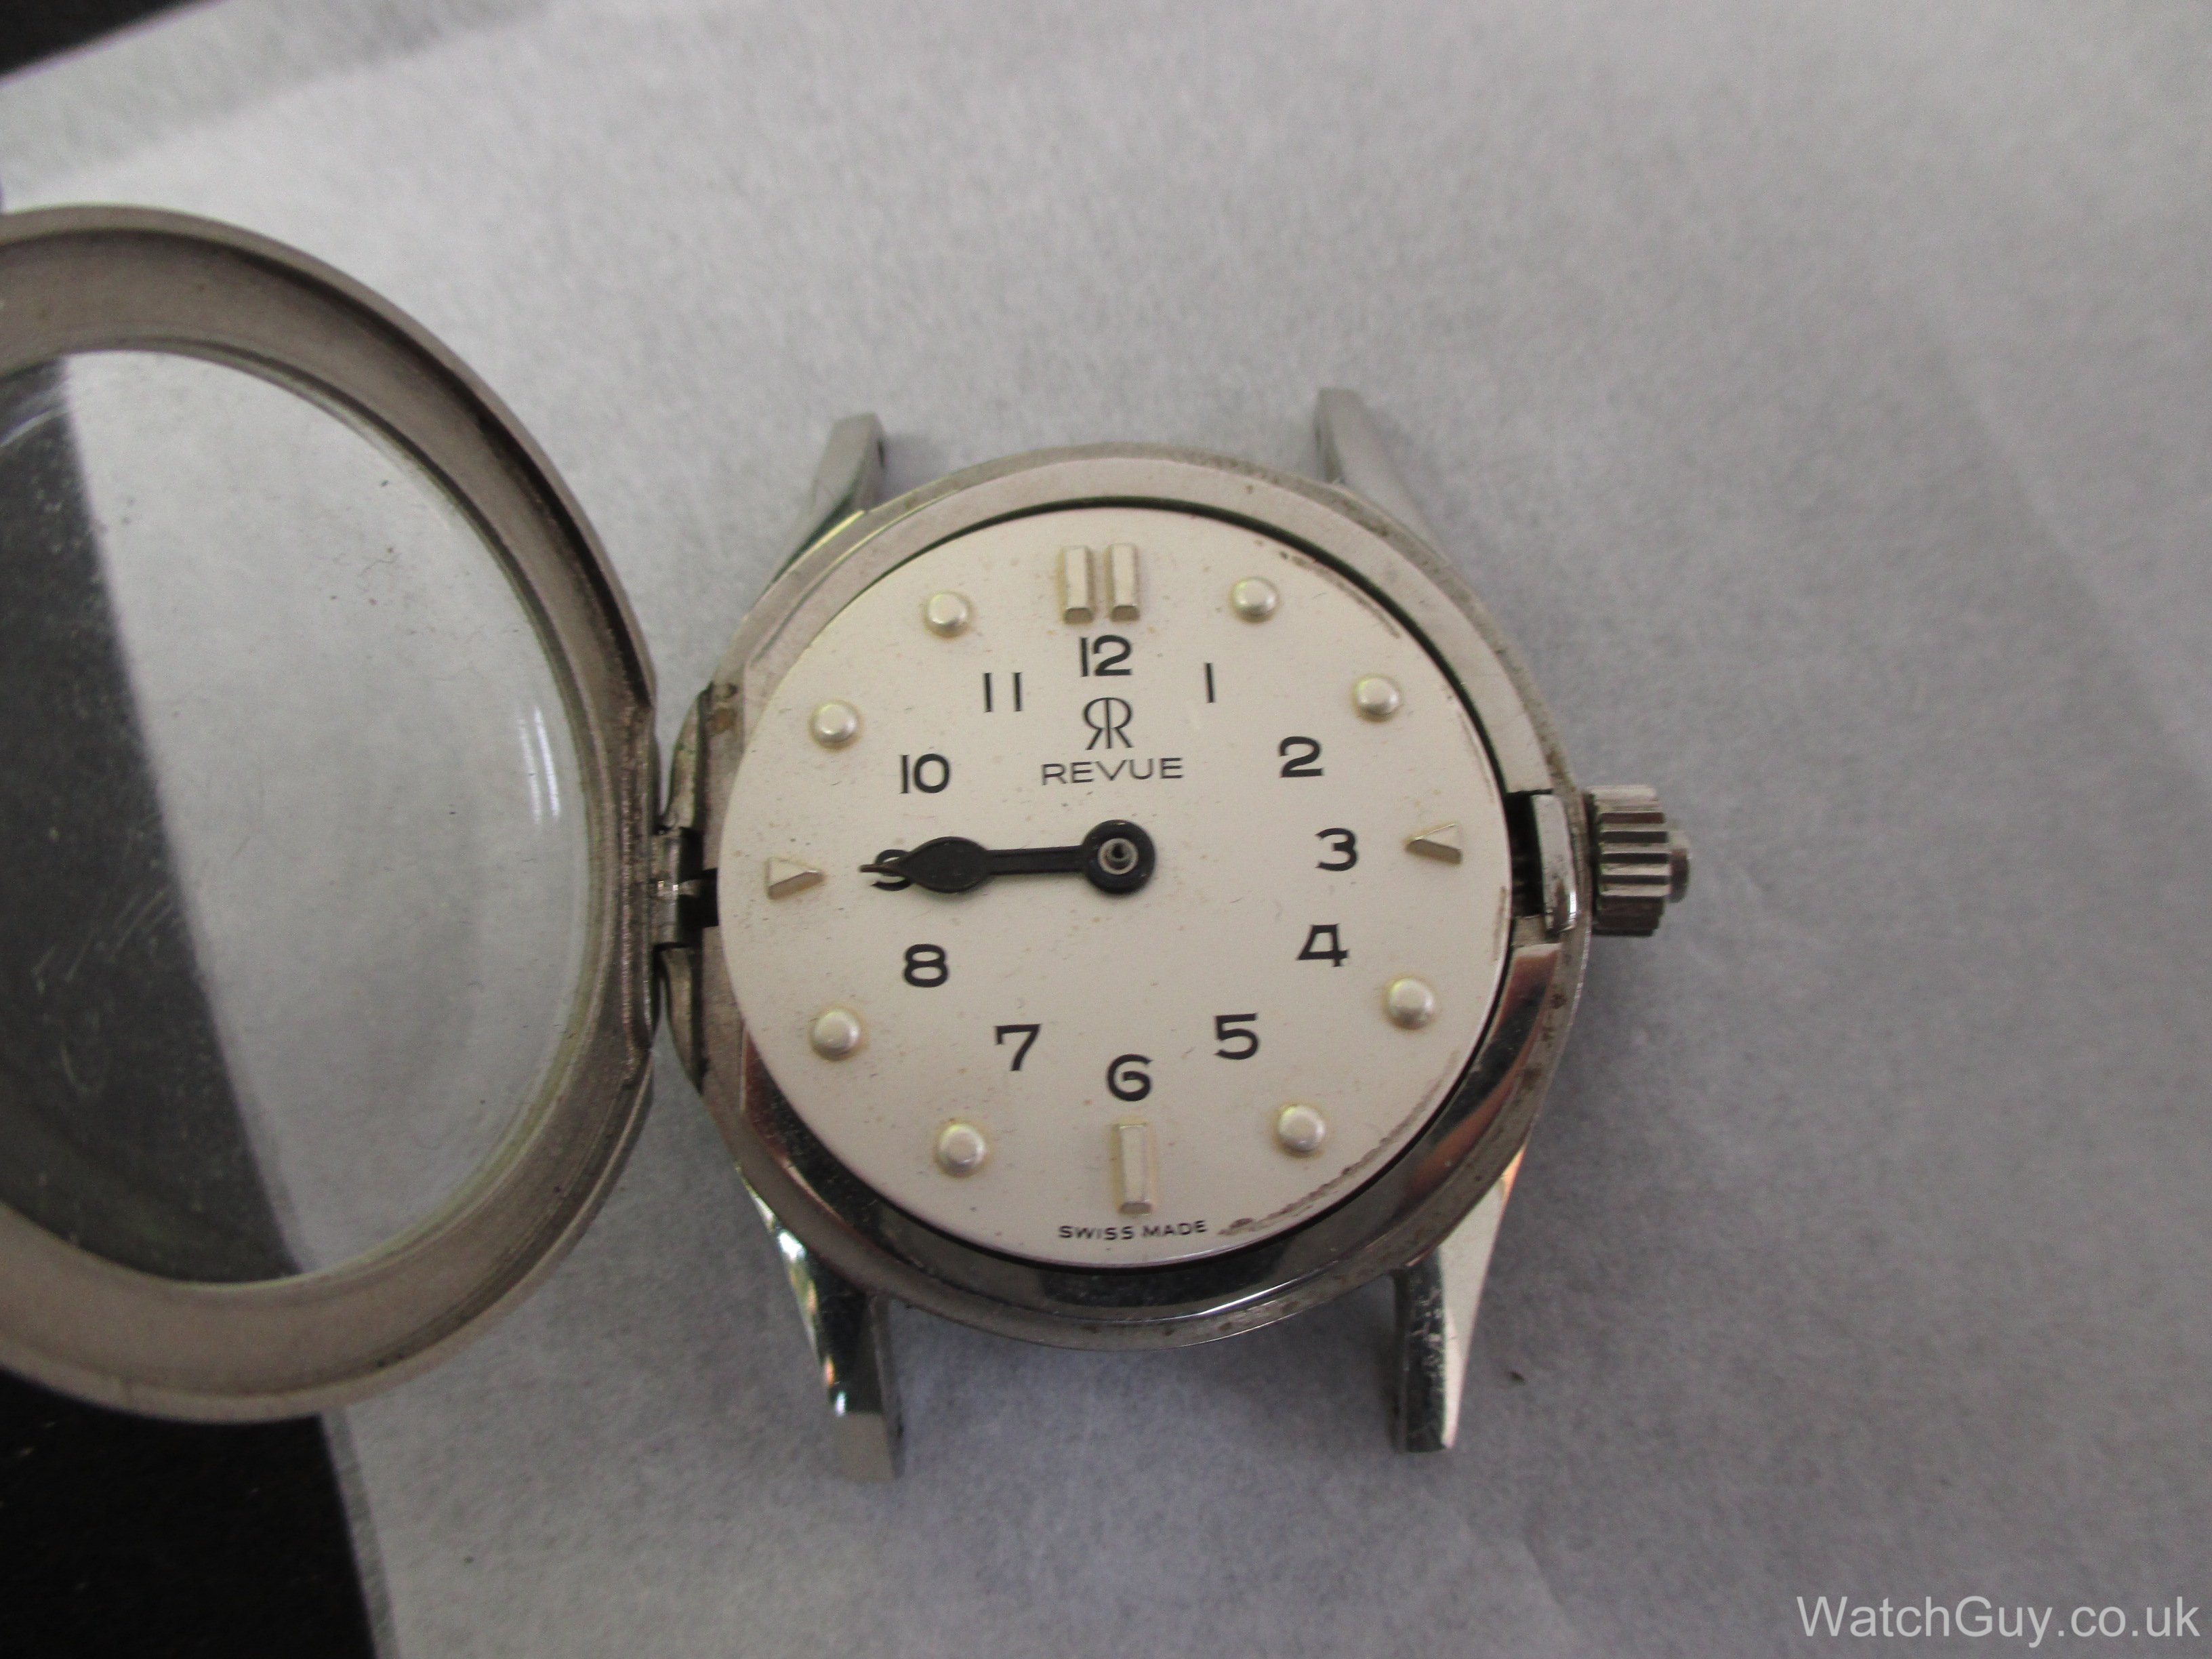 itm olympic watches blind raketa ussr orig the ll mechanical blinds soviet for watch guarantee clockwork games jewels